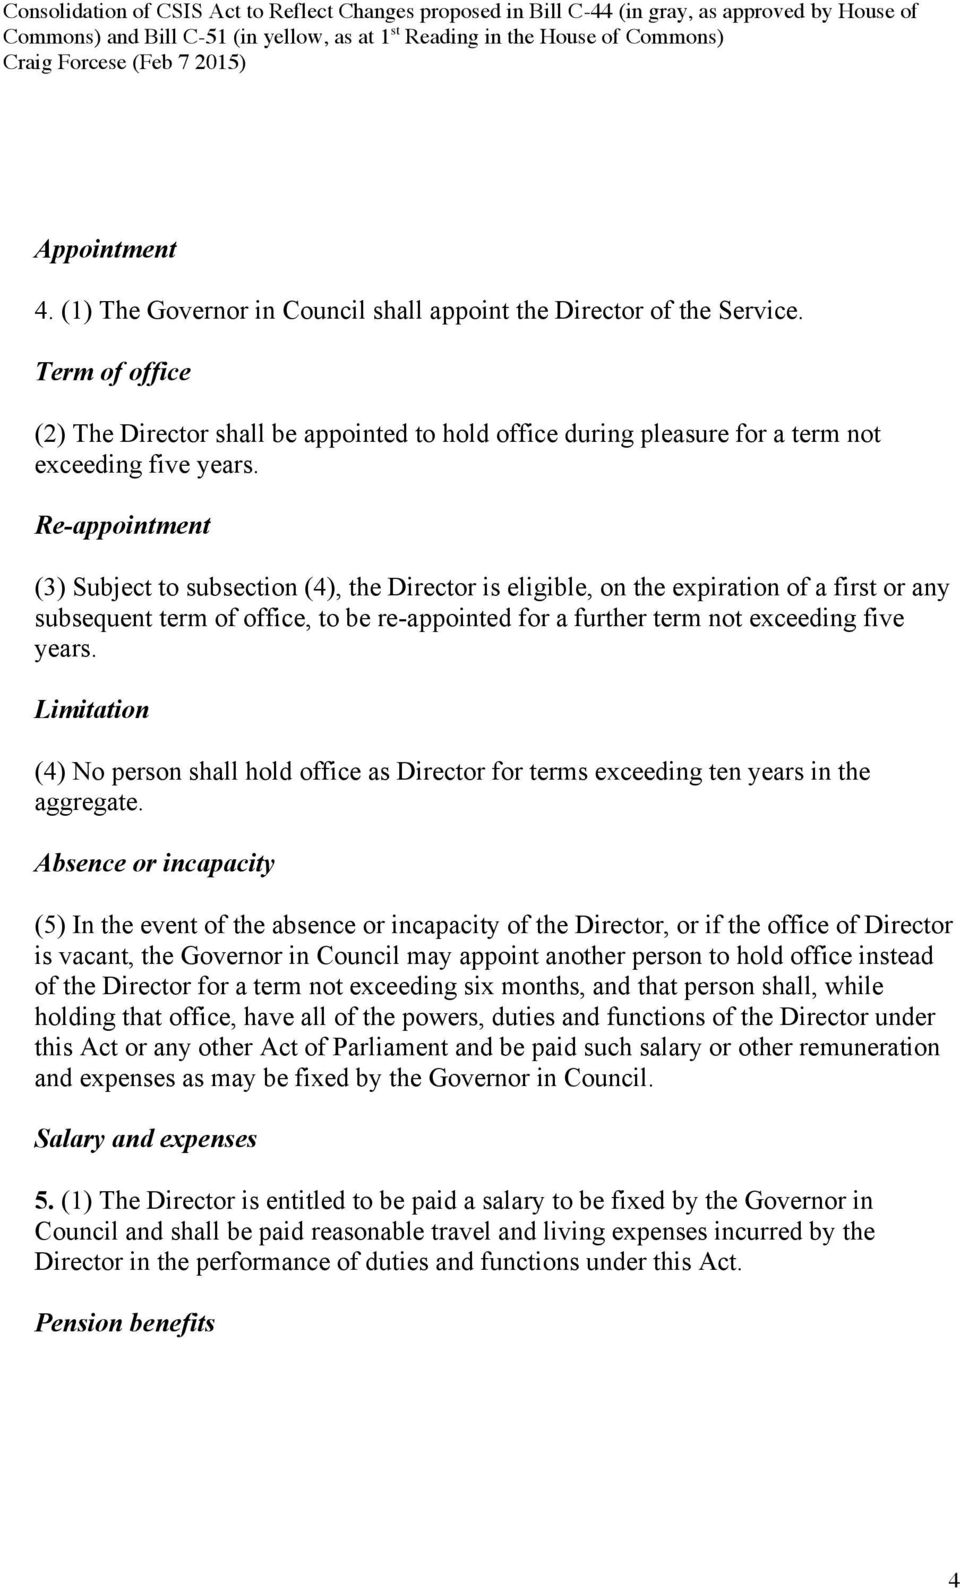 Re-appointment (3) Subject to subsection (4), the Director is eligible, on the expiration of a first or any subsequent term of office, to be re-appointed for a further term not exceeding five years.